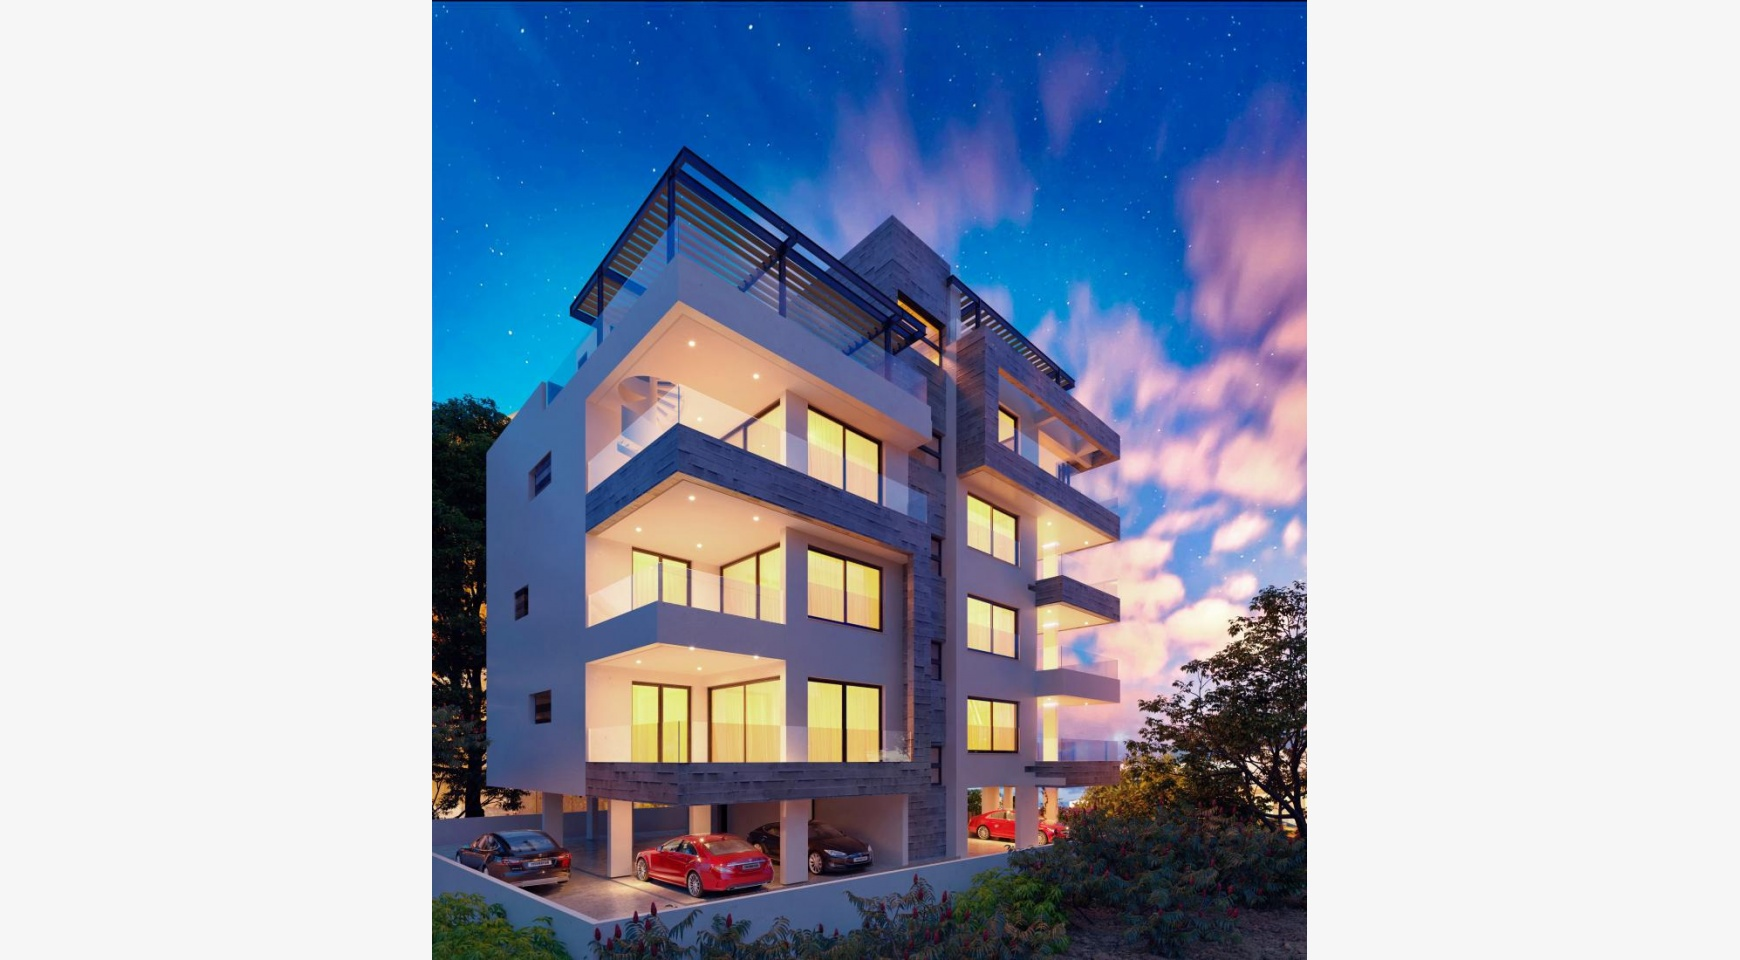 3 Bedroom Penthouse with a Private Pool in a New Contemporary Building near the Sea - 3